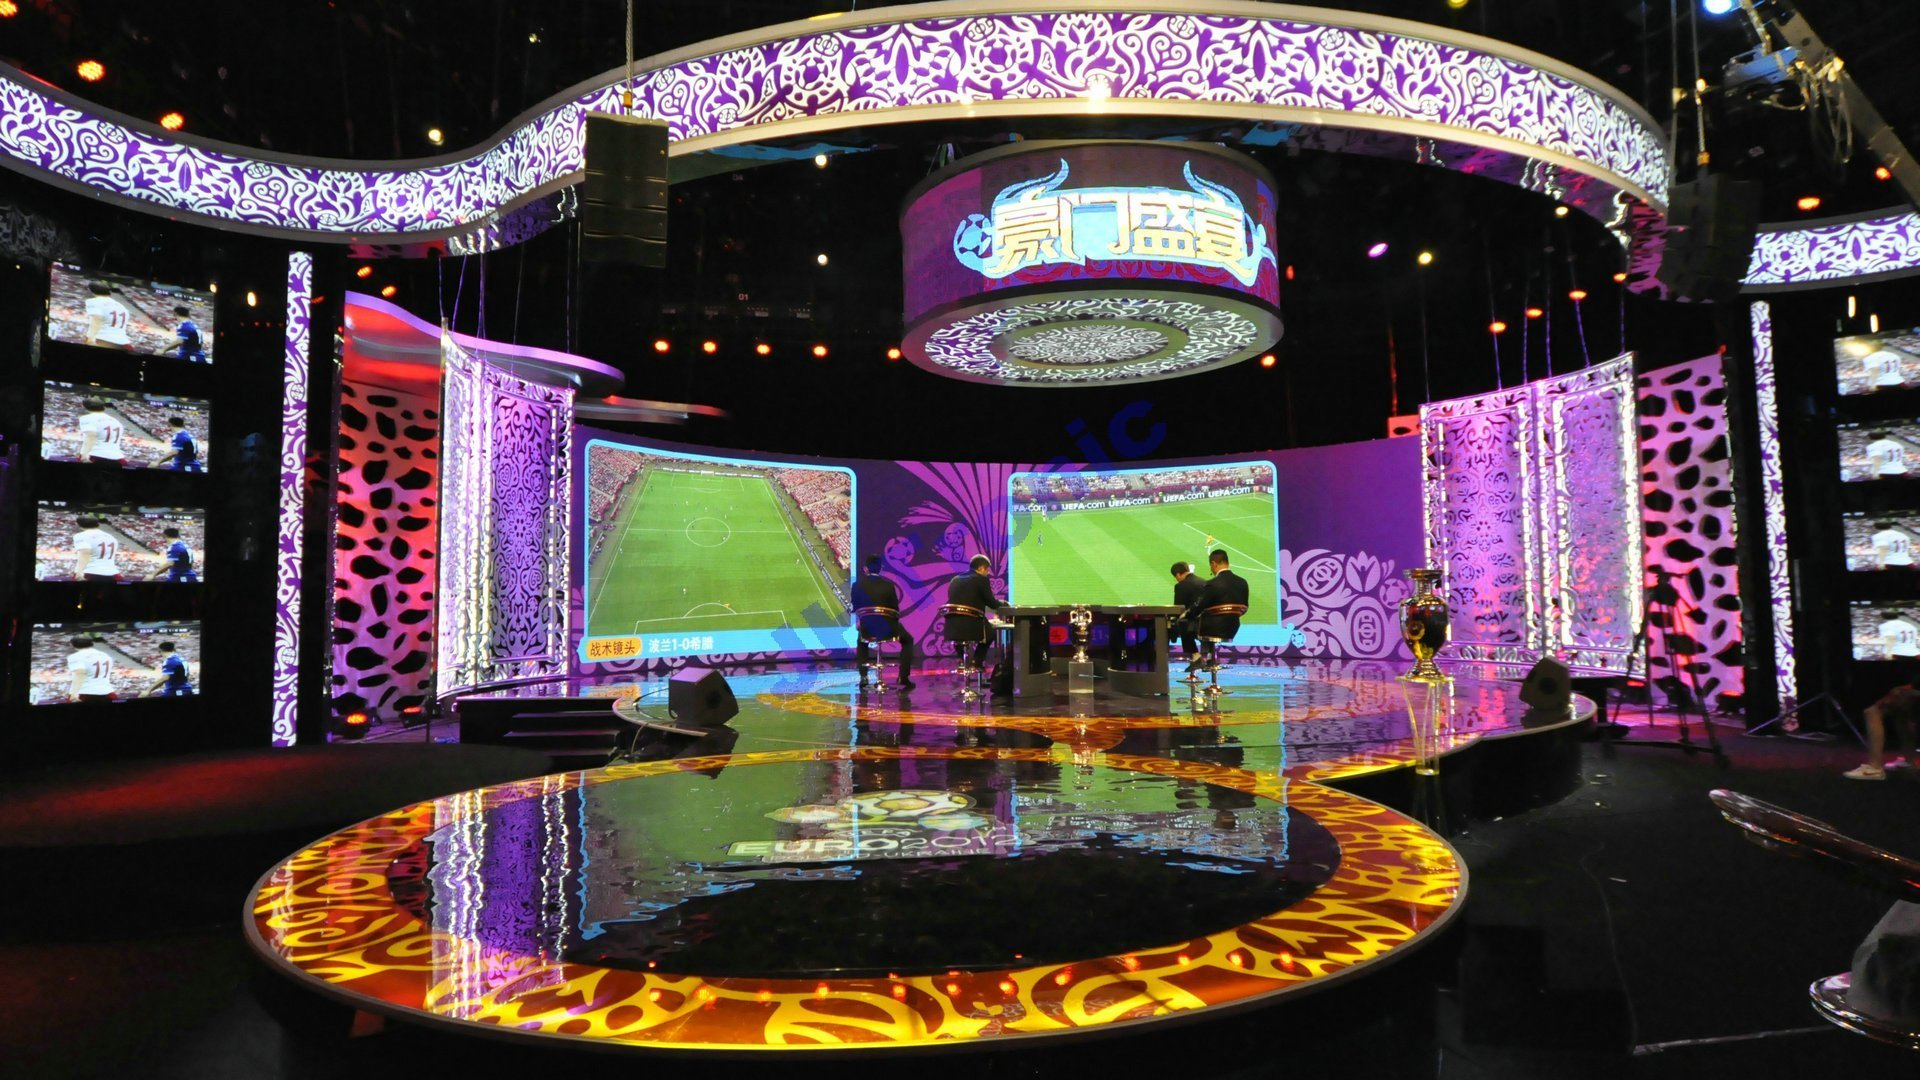 indoor-fixed-led-display-screen-panel-sign-curtain-billboards-outdoor-indoor-full-color-advertising-rental-stage0001